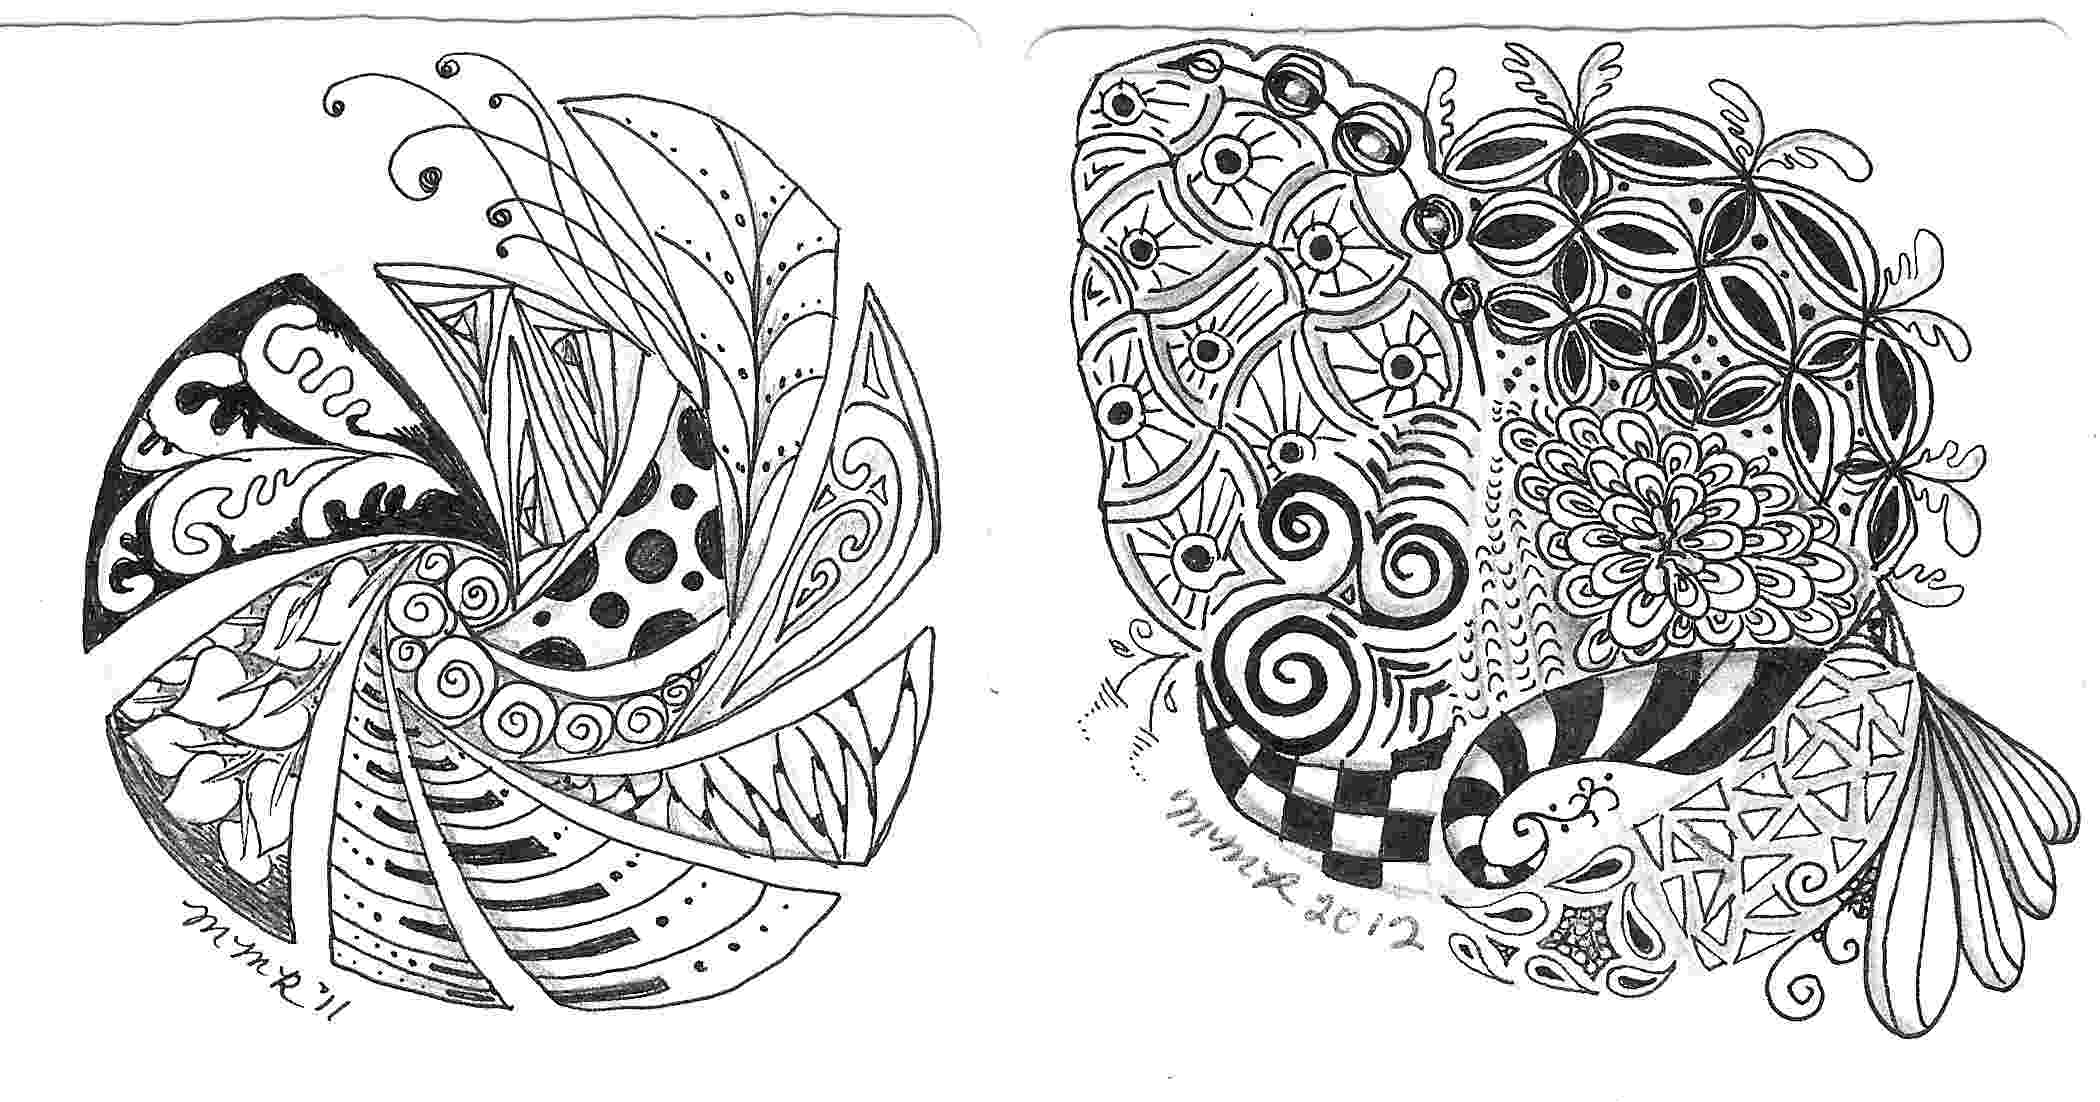 zentangle pictures what is zentangle minette riordan phd zentangle pictures